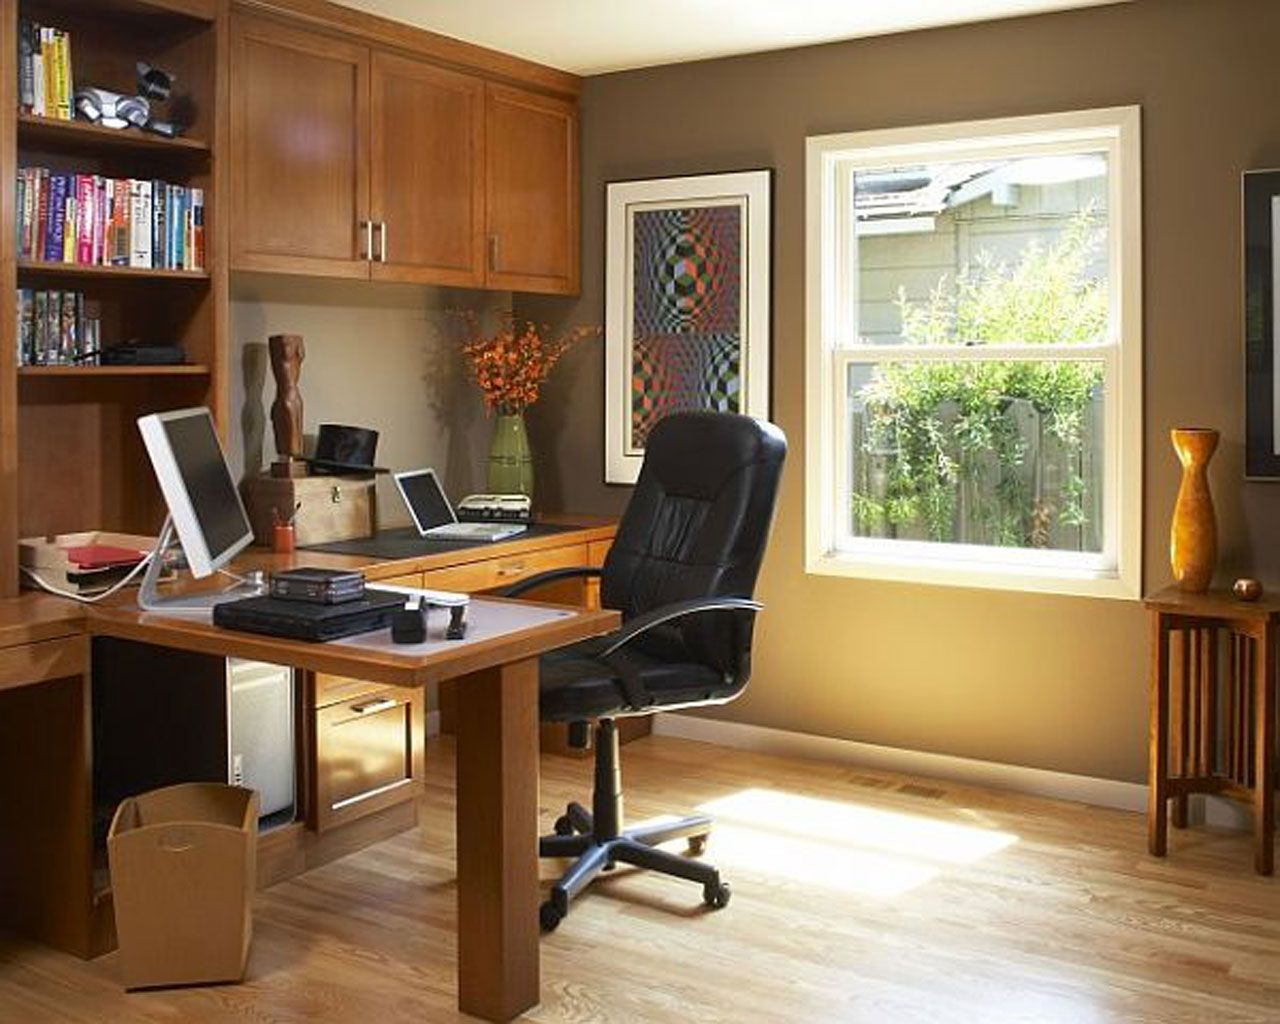 Swell 17 Best Images About Home Office On Pinterest Home Office Design Largest Home Design Picture Inspirations Pitcheantrous